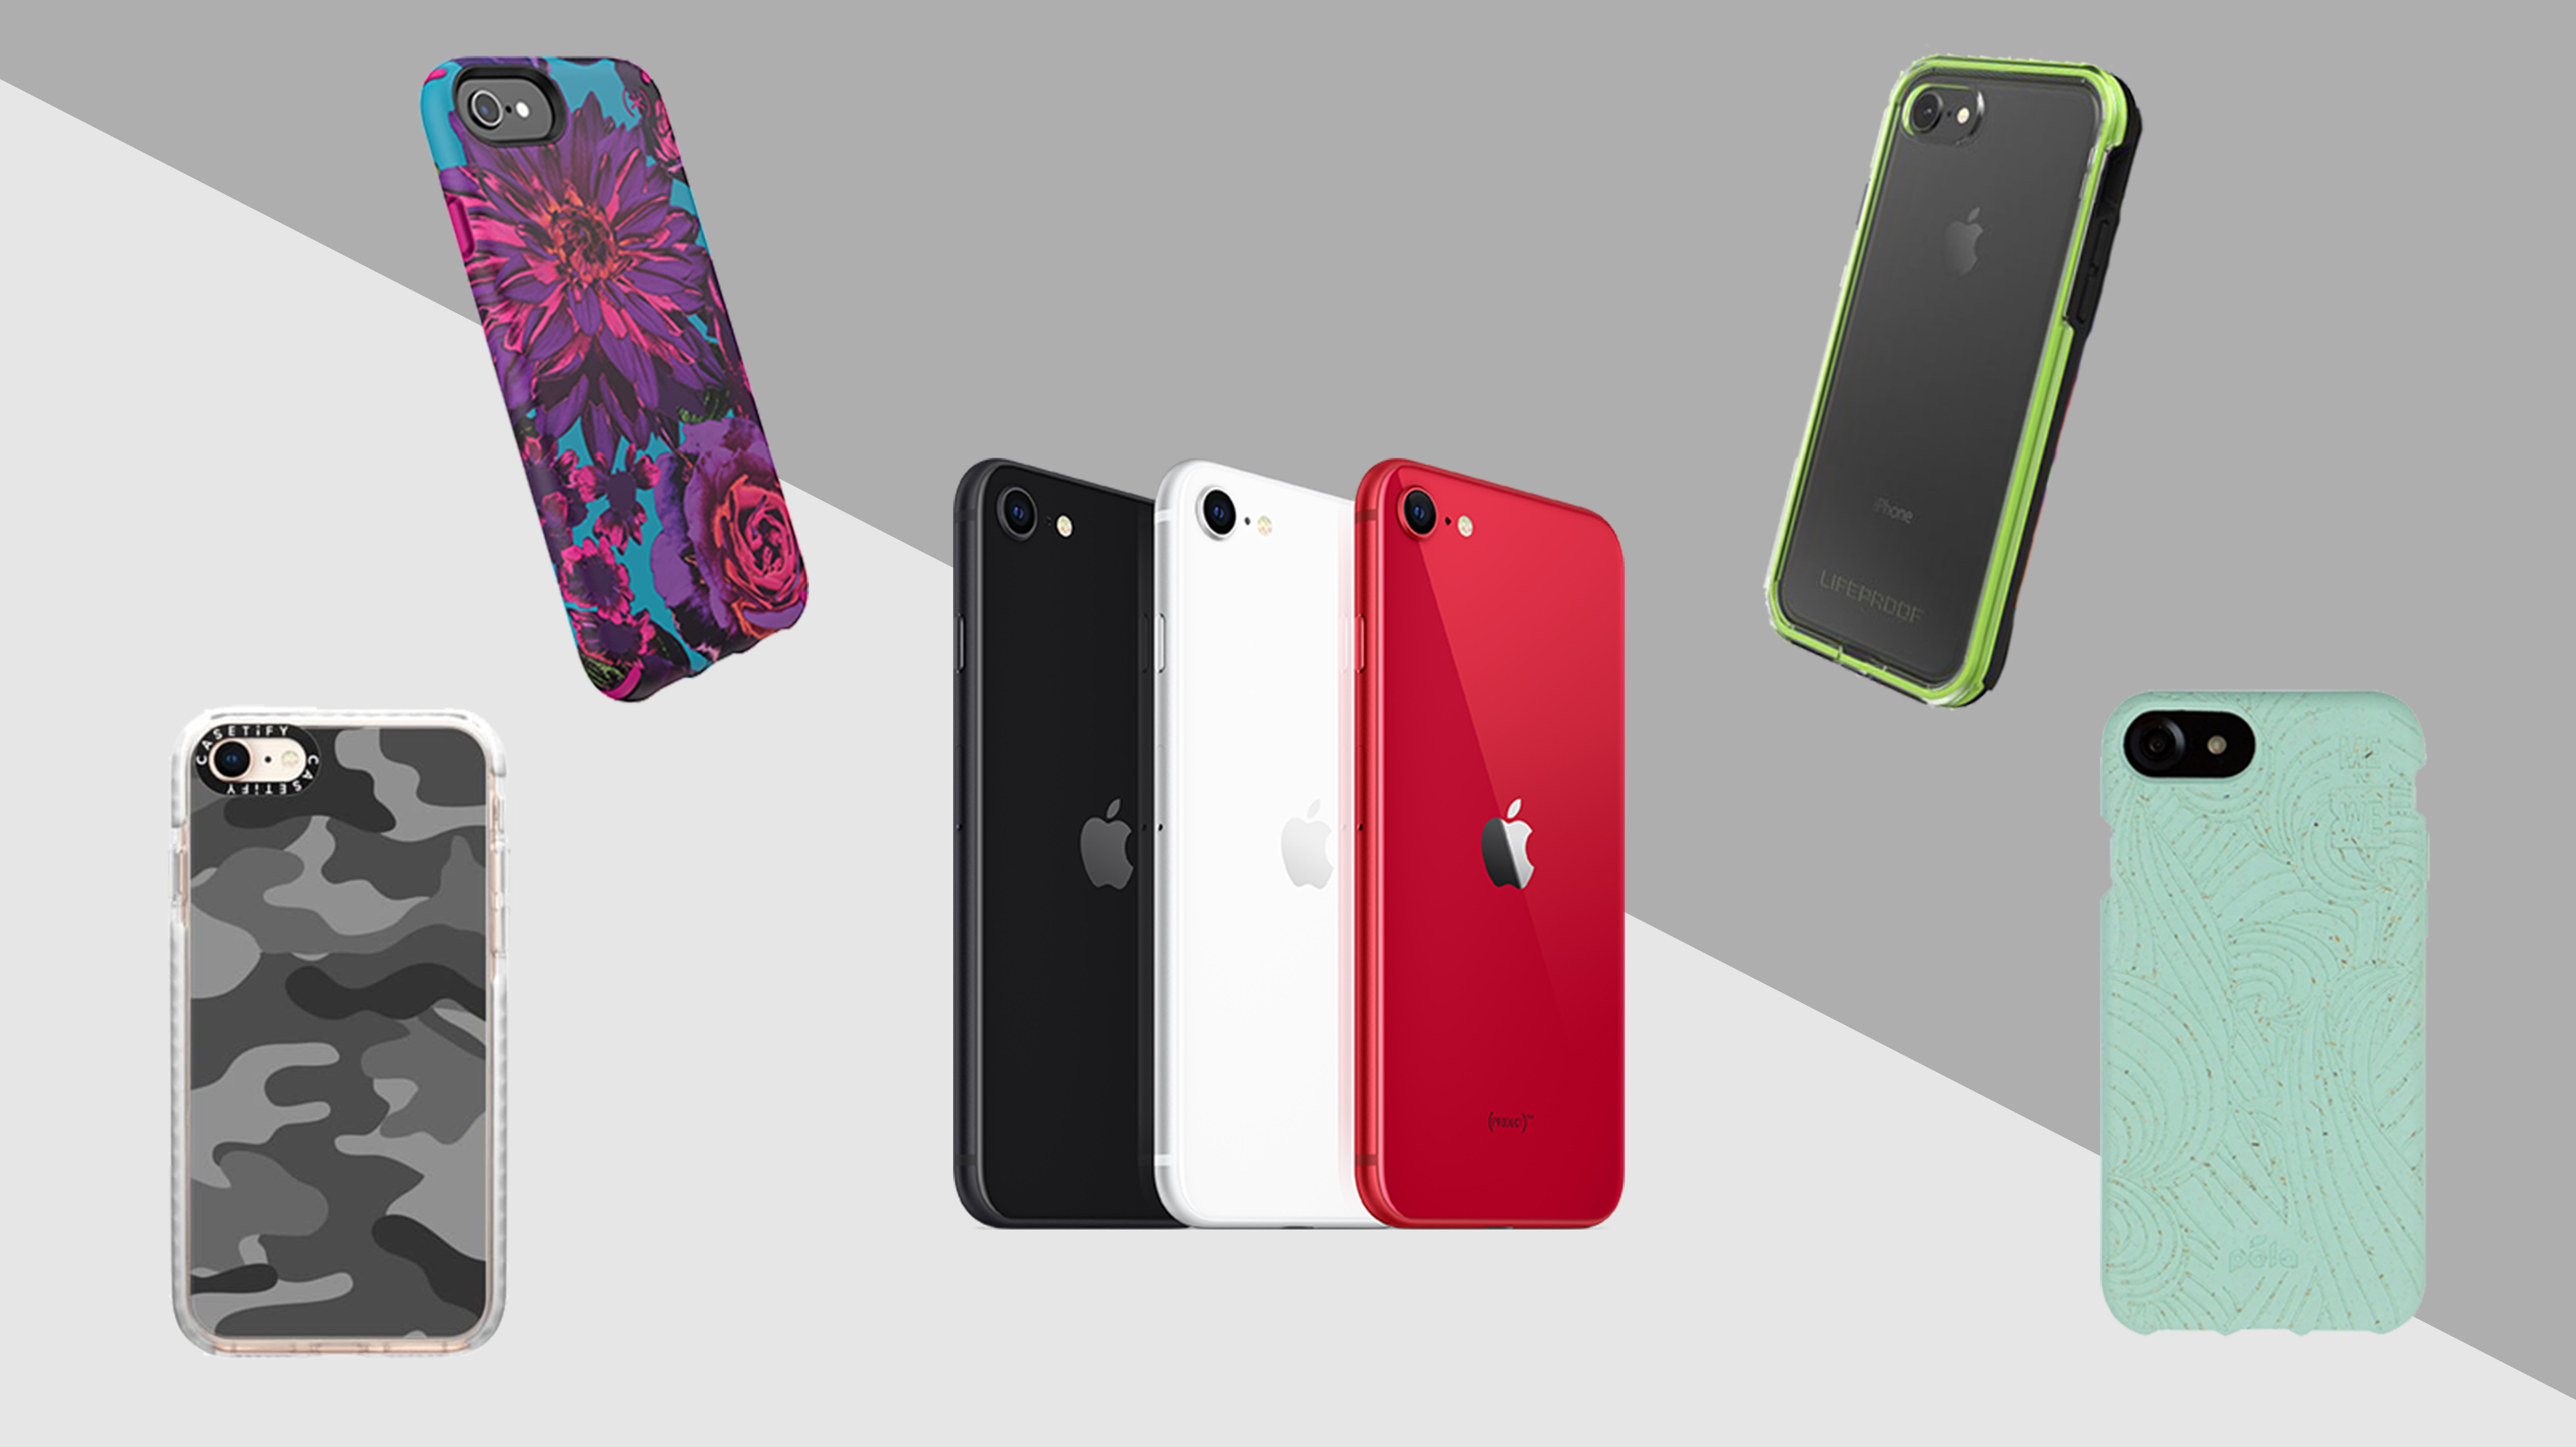 The iphone se is currently the most affordable apple smartphone available in india and was launched last year at a starting price of rs. Best Iphone Se Second Generation Cases Get Protection And Style With Our Picks Cnn Underscored